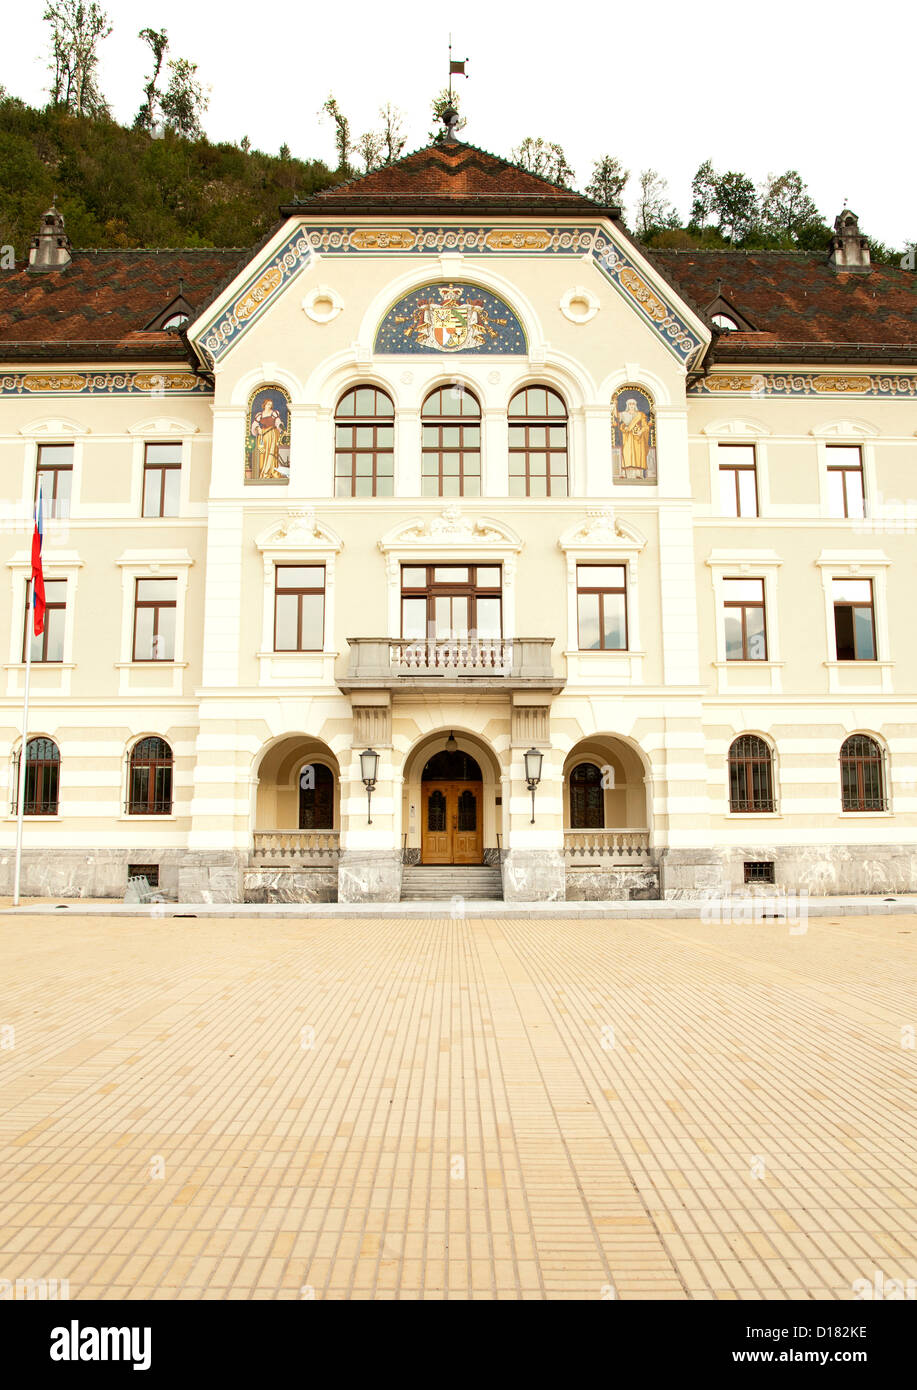 The Regierungsgebäude (Government / parliament building) in Vaduz, the capital of the Principality of Liechtenstein. - Stock Image